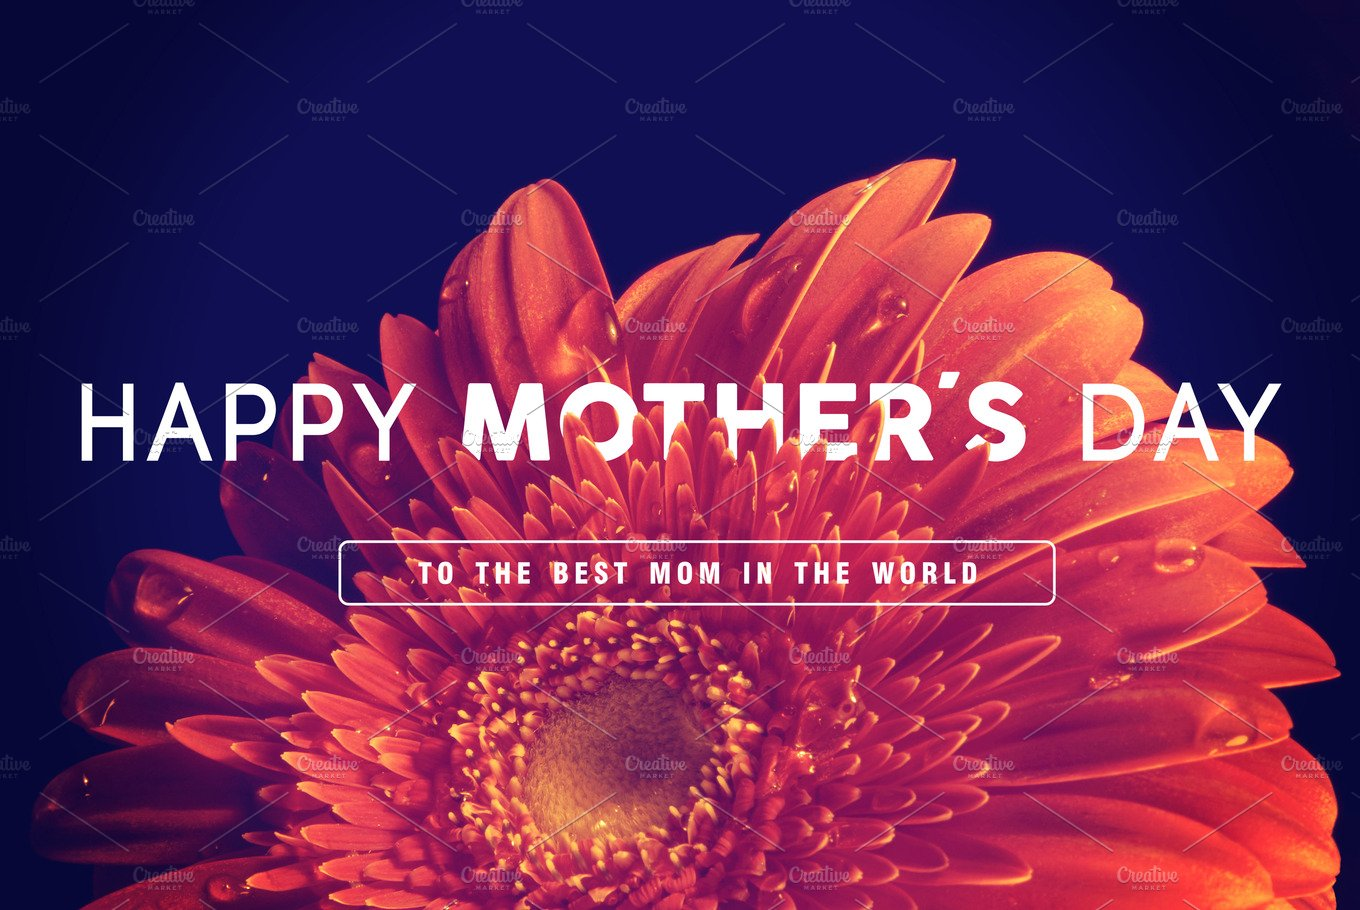 Happy Mothers Day Greeting Card People Images Creative Market